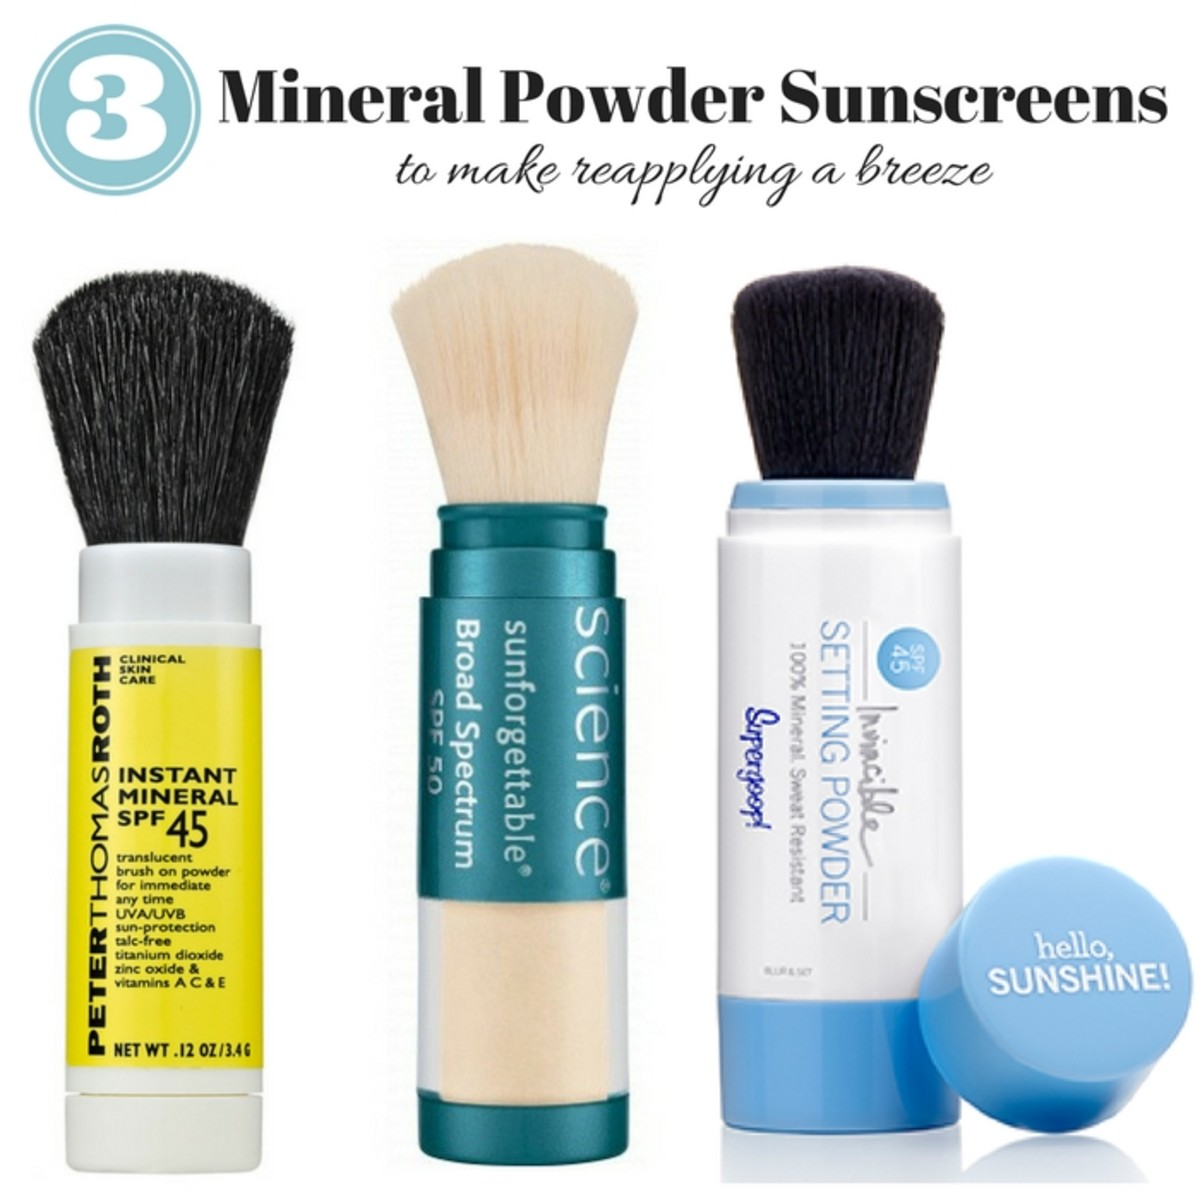 Mineral Powder Sunscreen